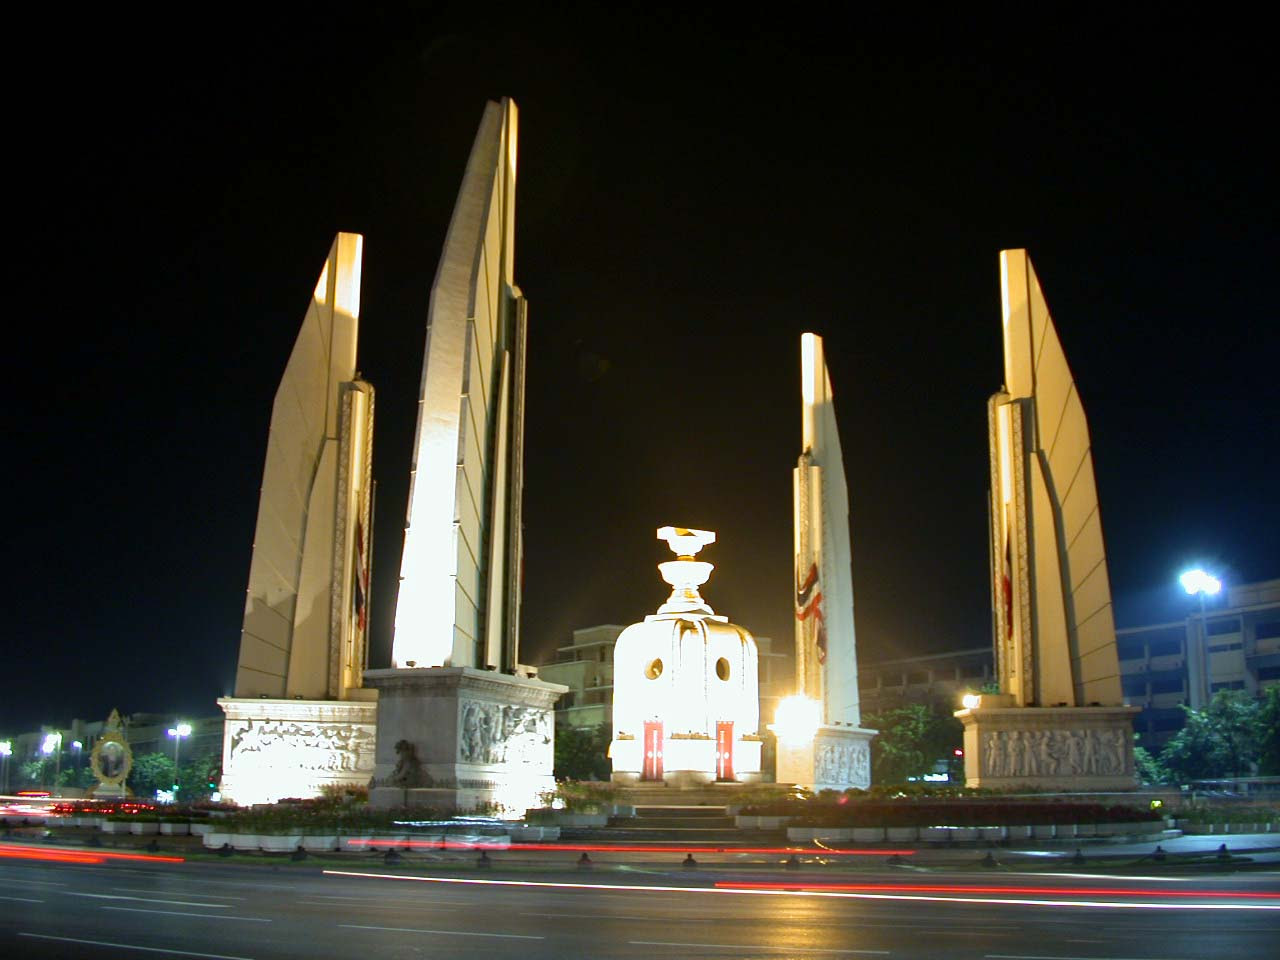 Democracy Monument Bangkok Location Map,Location Map of Democracy Monument Bangkok,Democracy Monument Bangkok accommodation destinations attractions hotels map photos pictures